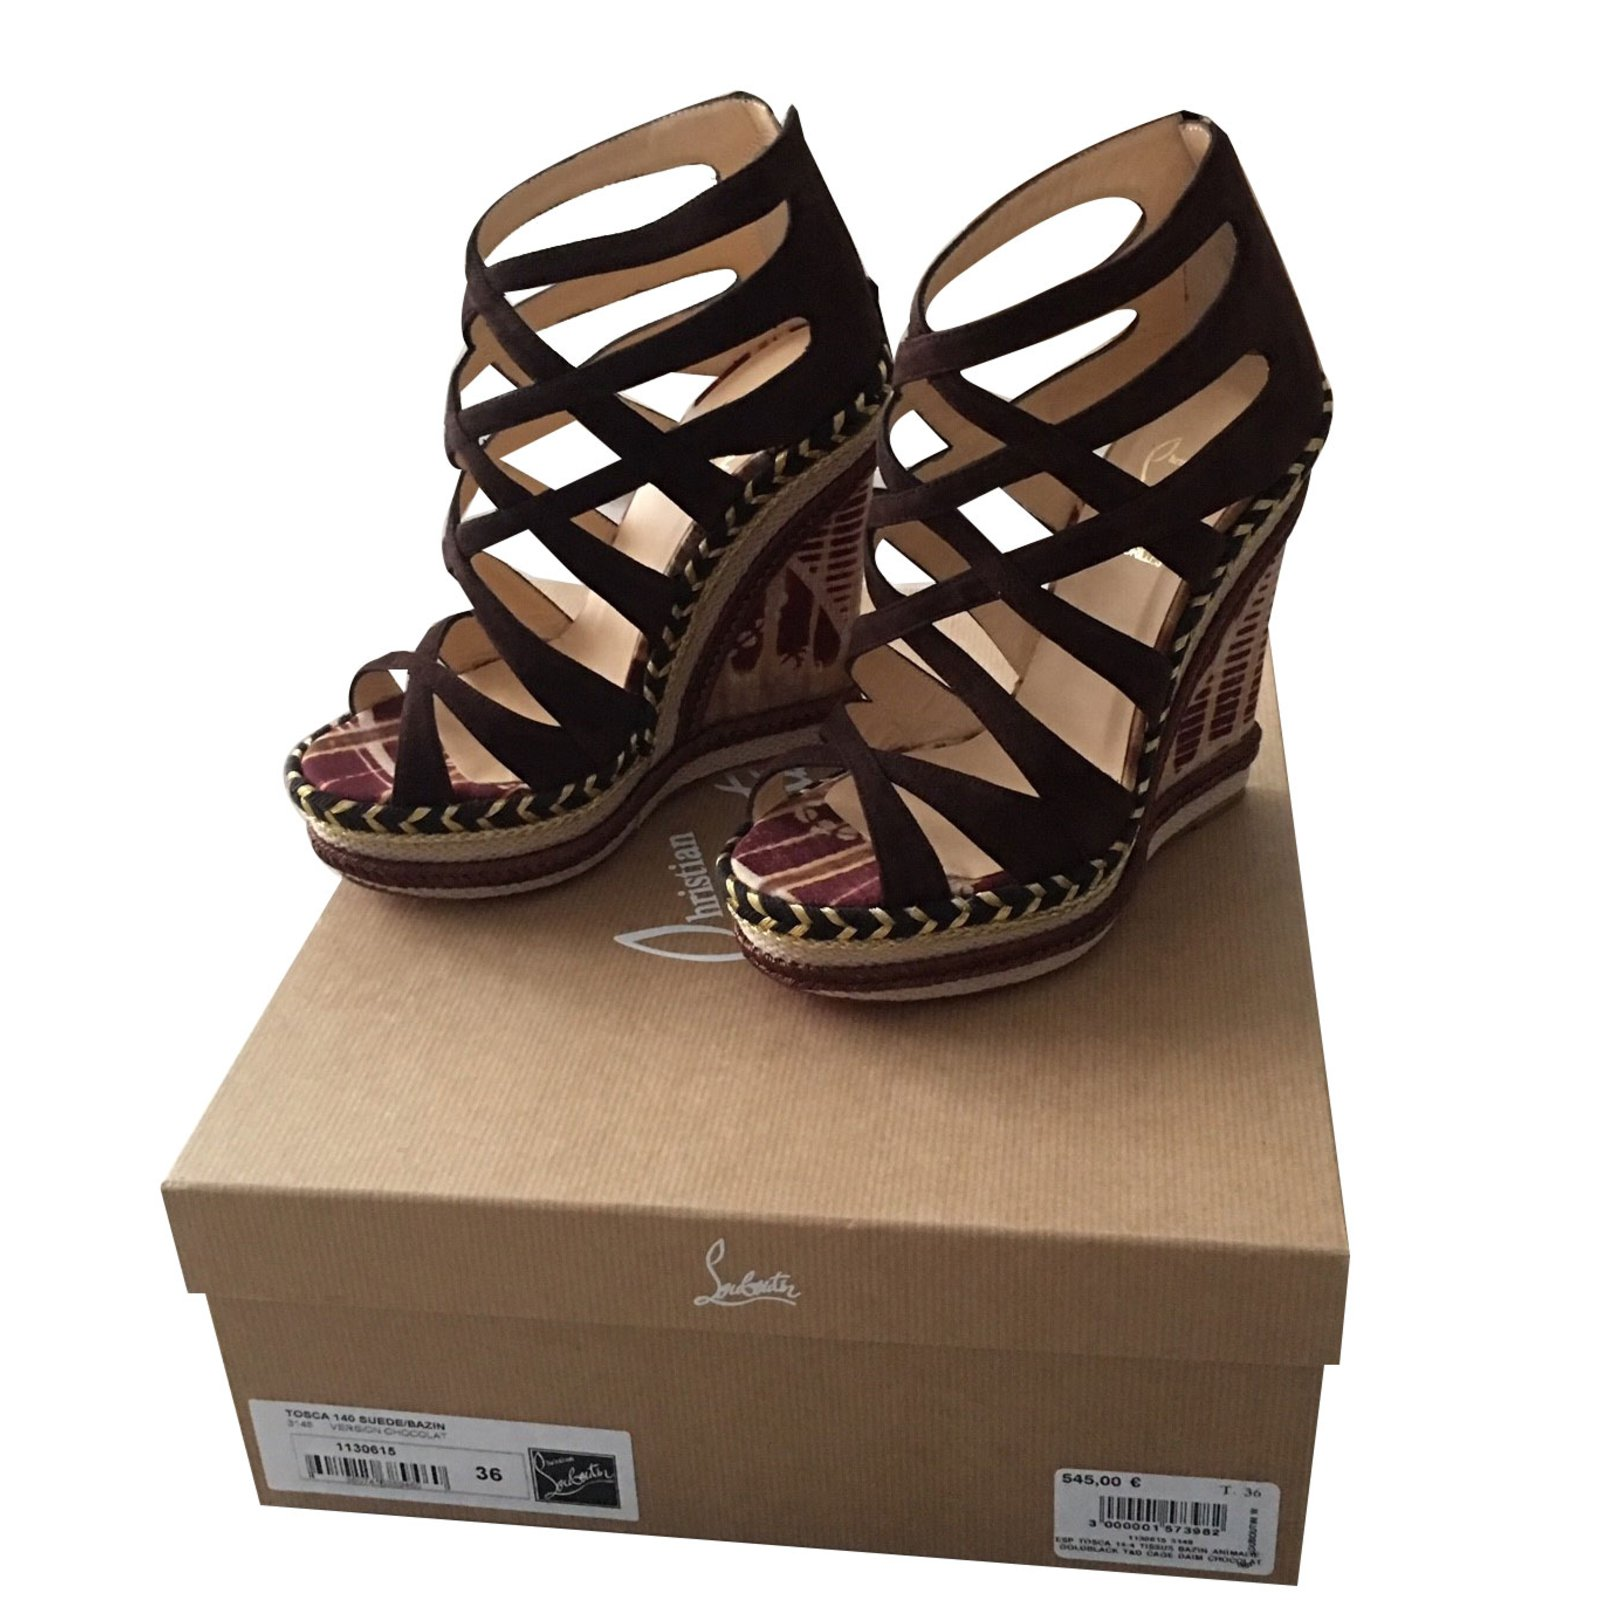 4f9911fbec91 ... promo code christian louboutin tosca 140 suede bazin sandals leather  brown ref.59750 48a56 fbb96